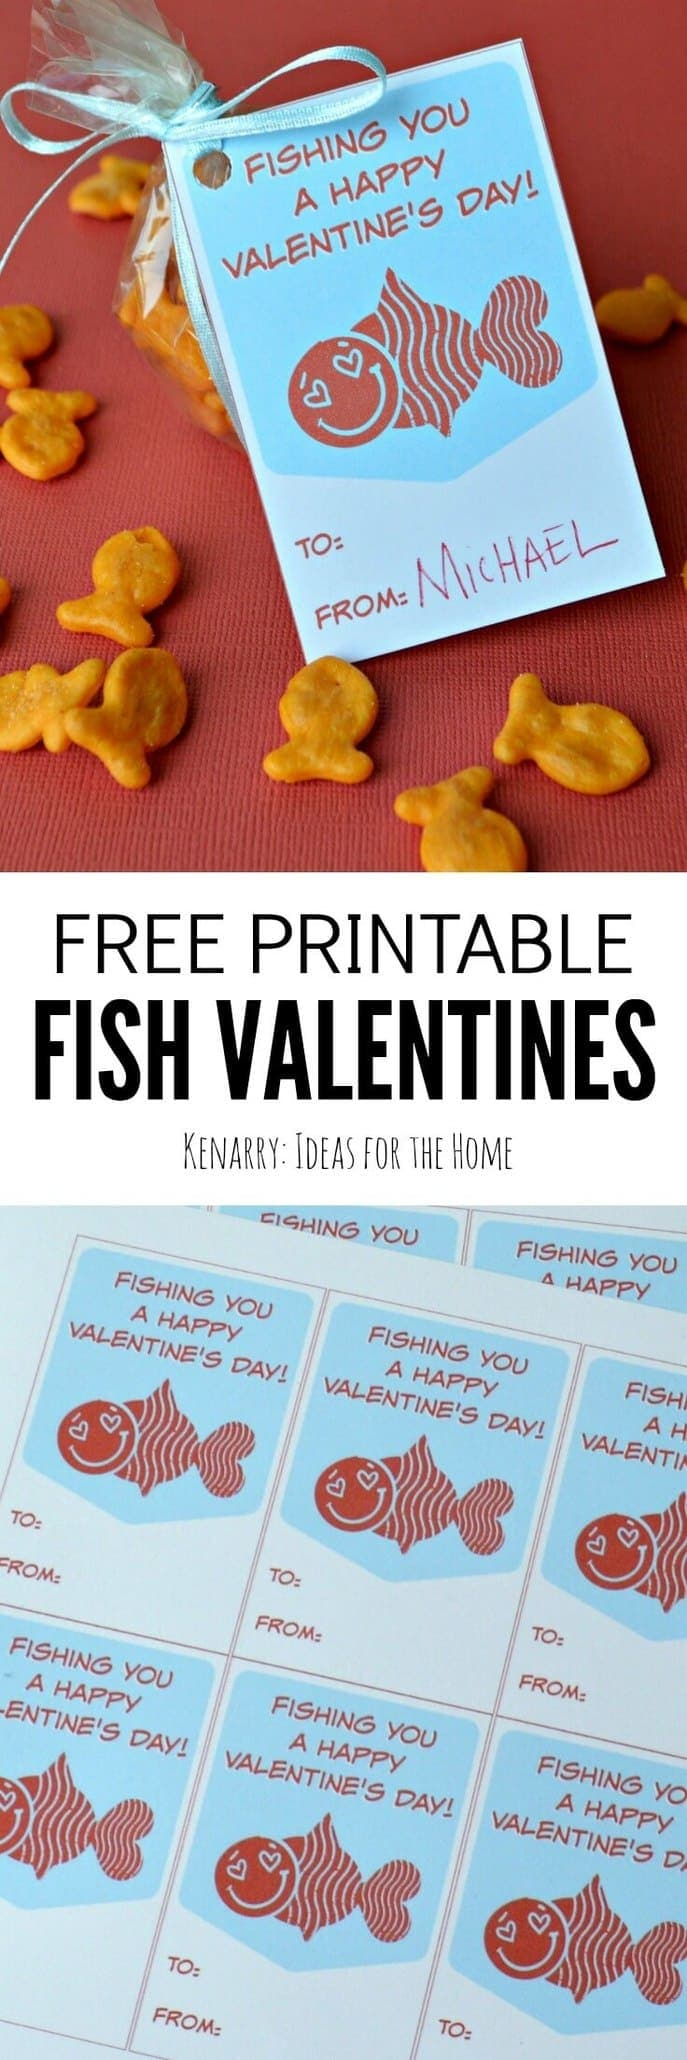 These free printable fish valentines are so cute! Your child can use these cards on their own or attach to a bag of fish crackers for a Valentine's Day treat.